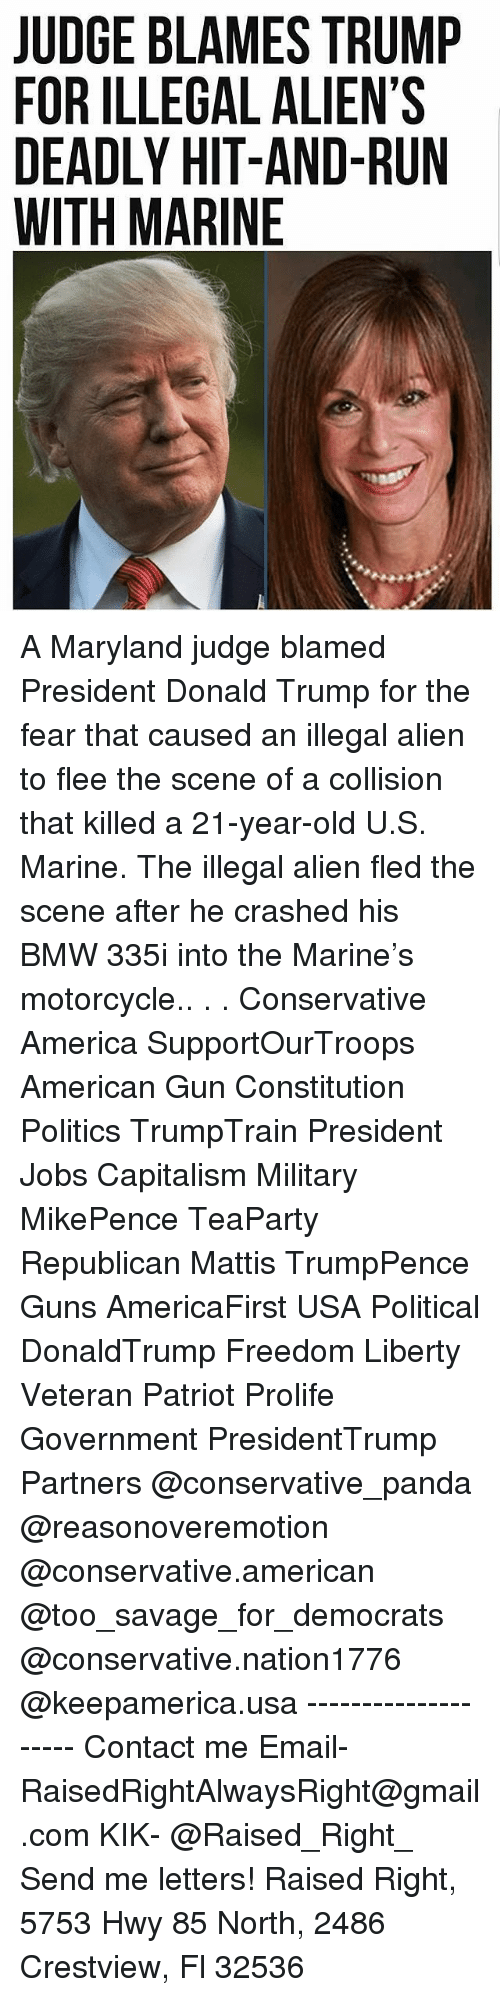 America, Bmw, and Donald Trump: JUDGE BLAMES TRUMP  FOR ILLEGAL ALIEN'S  DEADLY HIT-AND-RUN  WITH MARINE A Maryland judge blamed President Donald Trump for the fear that caused an illegal alien to flee the scene of a collision that killed a 21-year-old U.S. Marine. The illegal alien fled the scene after he crashed his BMW 335i into the Marine's motorcycle.. . . Conservative America SupportOurTroops American Gun Constitution Politics TrumpTrain President Jobs Capitalism Military MikePence TeaParty Republican Mattis TrumpPence Guns AmericaFirst USA Political DonaldTrump Freedom Liberty Veteran Patriot Prolife Government PresidentTrump Partners @conservative_panda @reasonoveremotion @conservative.american @too_savage_for_democrats @conservative.nation1776 @keepamerica.usa -------------------- Contact me ●Email- RaisedRightAlwaysRight@gmail.com ●KIK- @Raised_Right_ ●Send me letters! Raised Right, 5753 Hwy 85 North, 2486 Crestview, Fl 32536